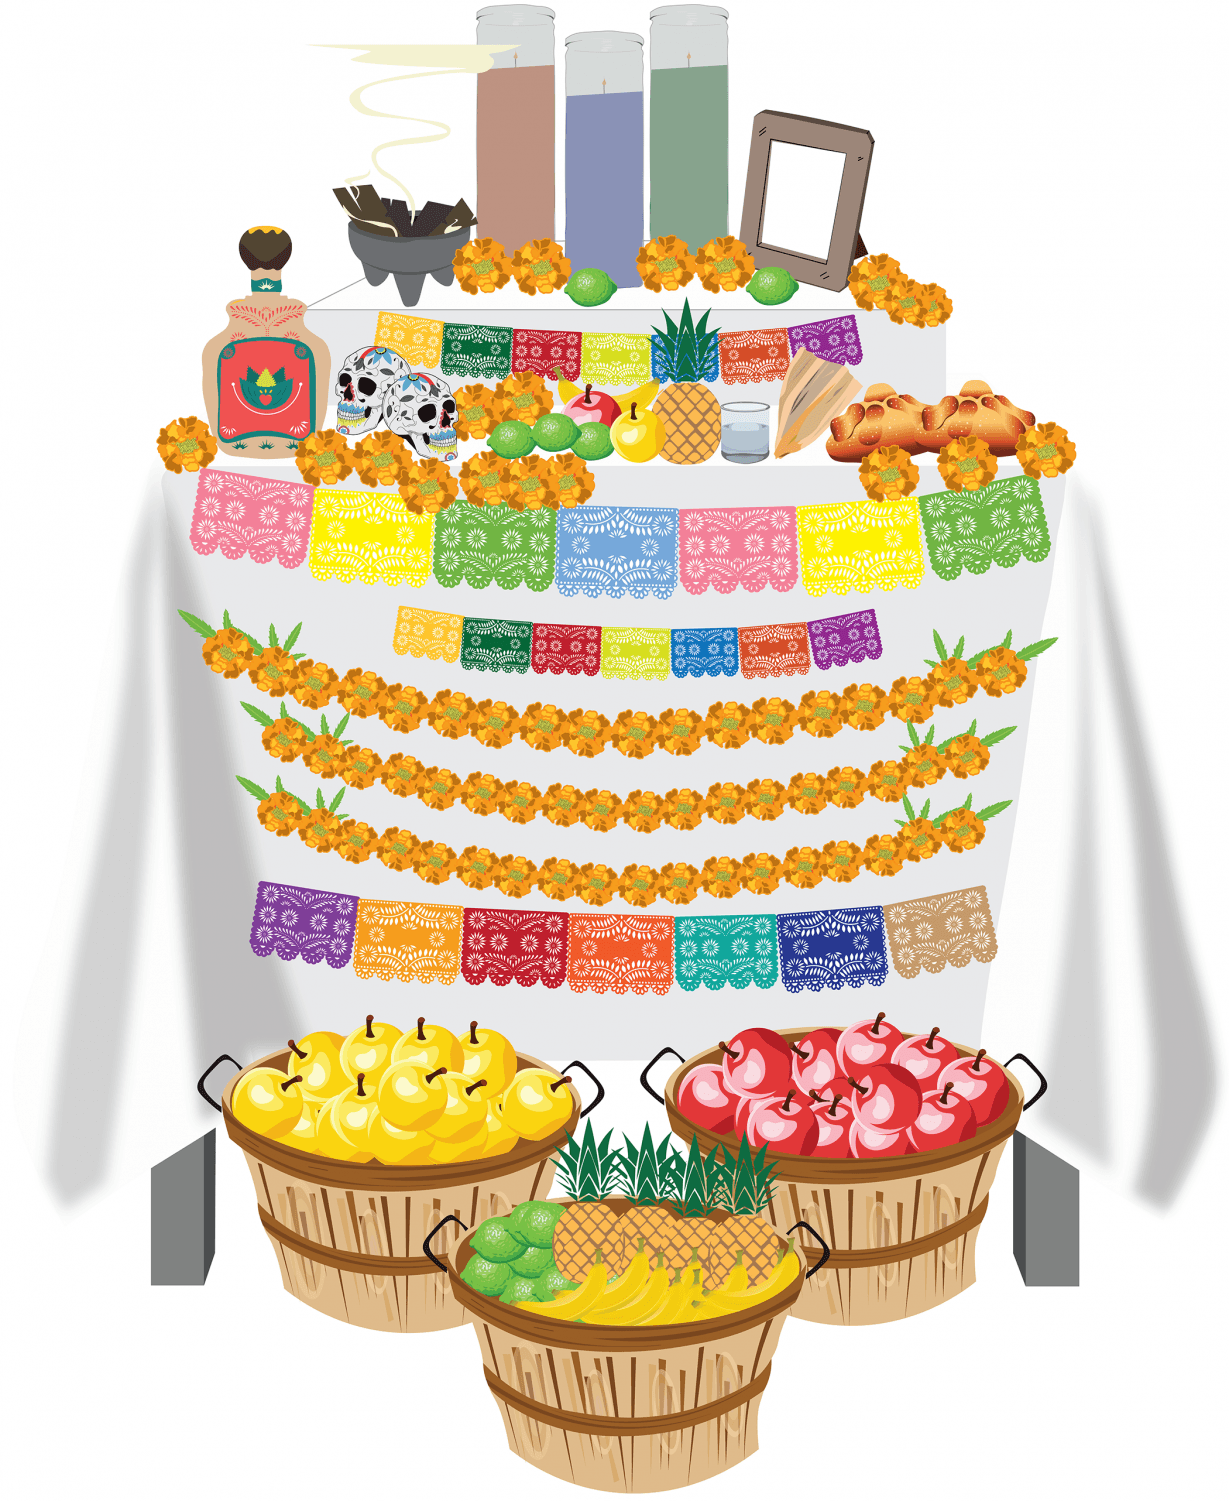 Those who celebrate Day of the Dead often decorate ofrendas, ritual altars decorated with personal items meant to invite the spirit of their lost loved ones.